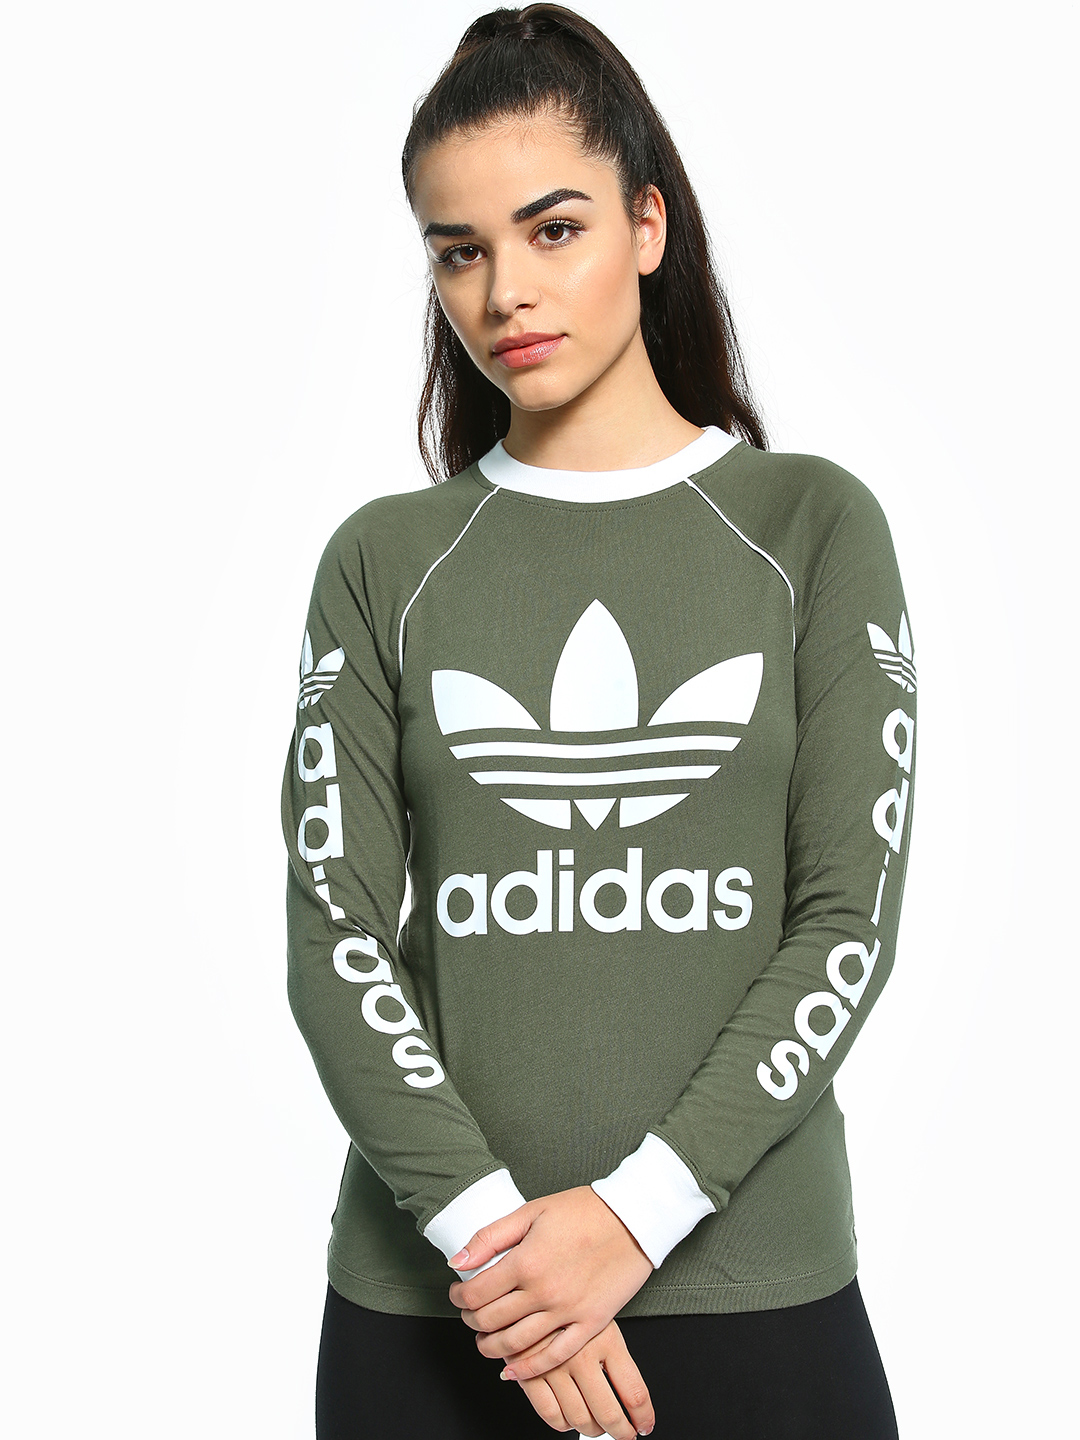 Adidas Originals Green OG Long Sleeve T-Shirt 1